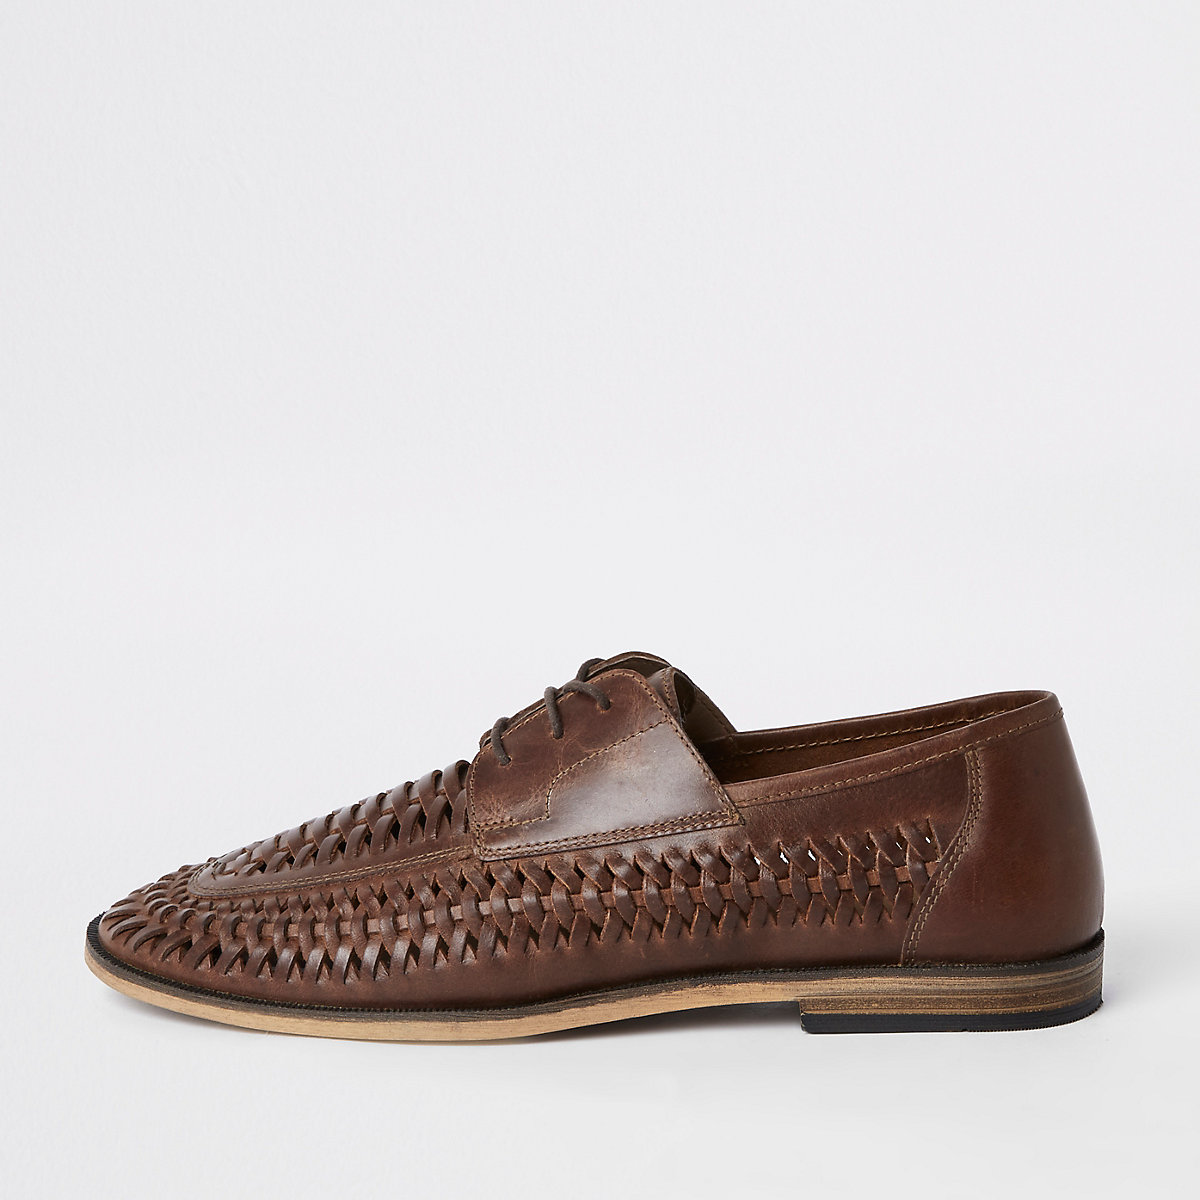 Tan leather woven lace-up derby shoes